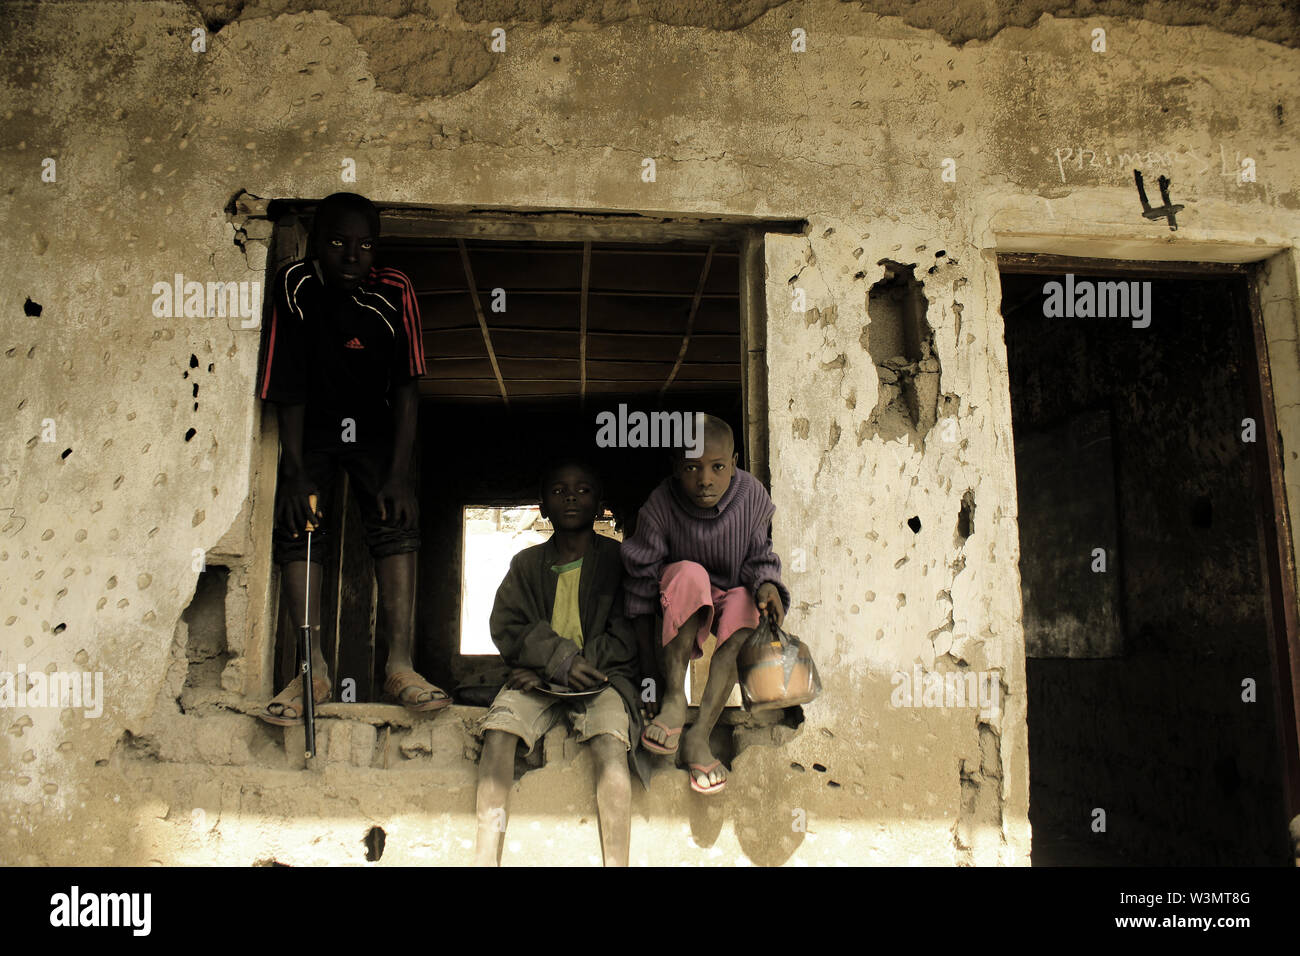 Returnee school children at Lassa, Borno state - Stock Image